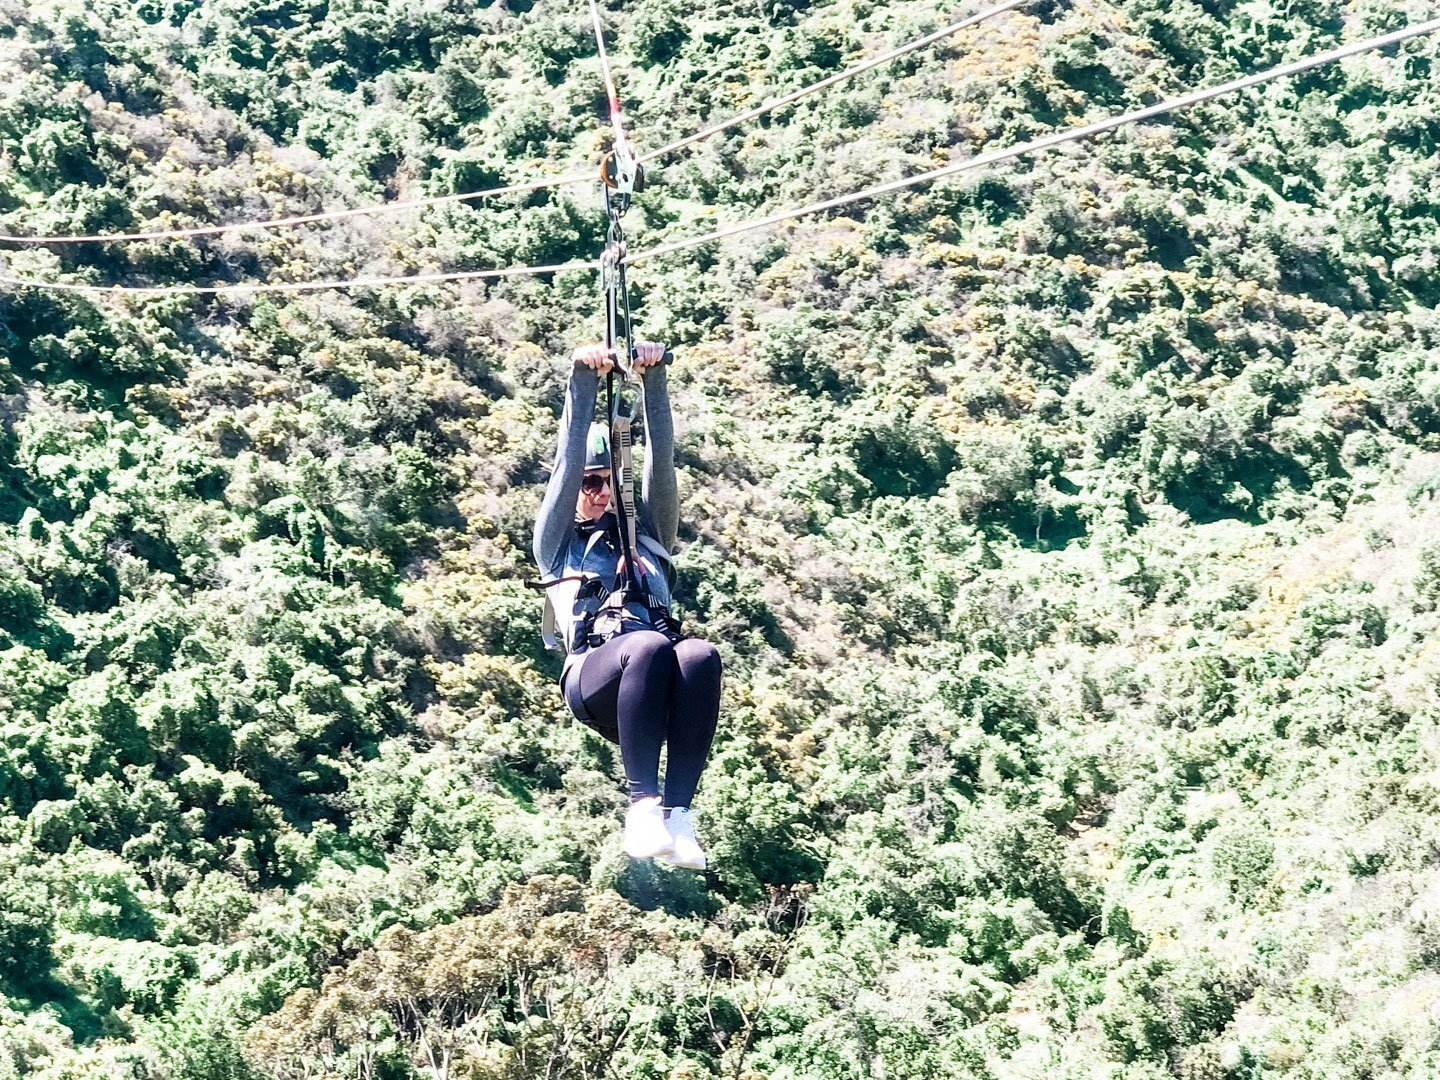 Catalina Island Zip Line Tour